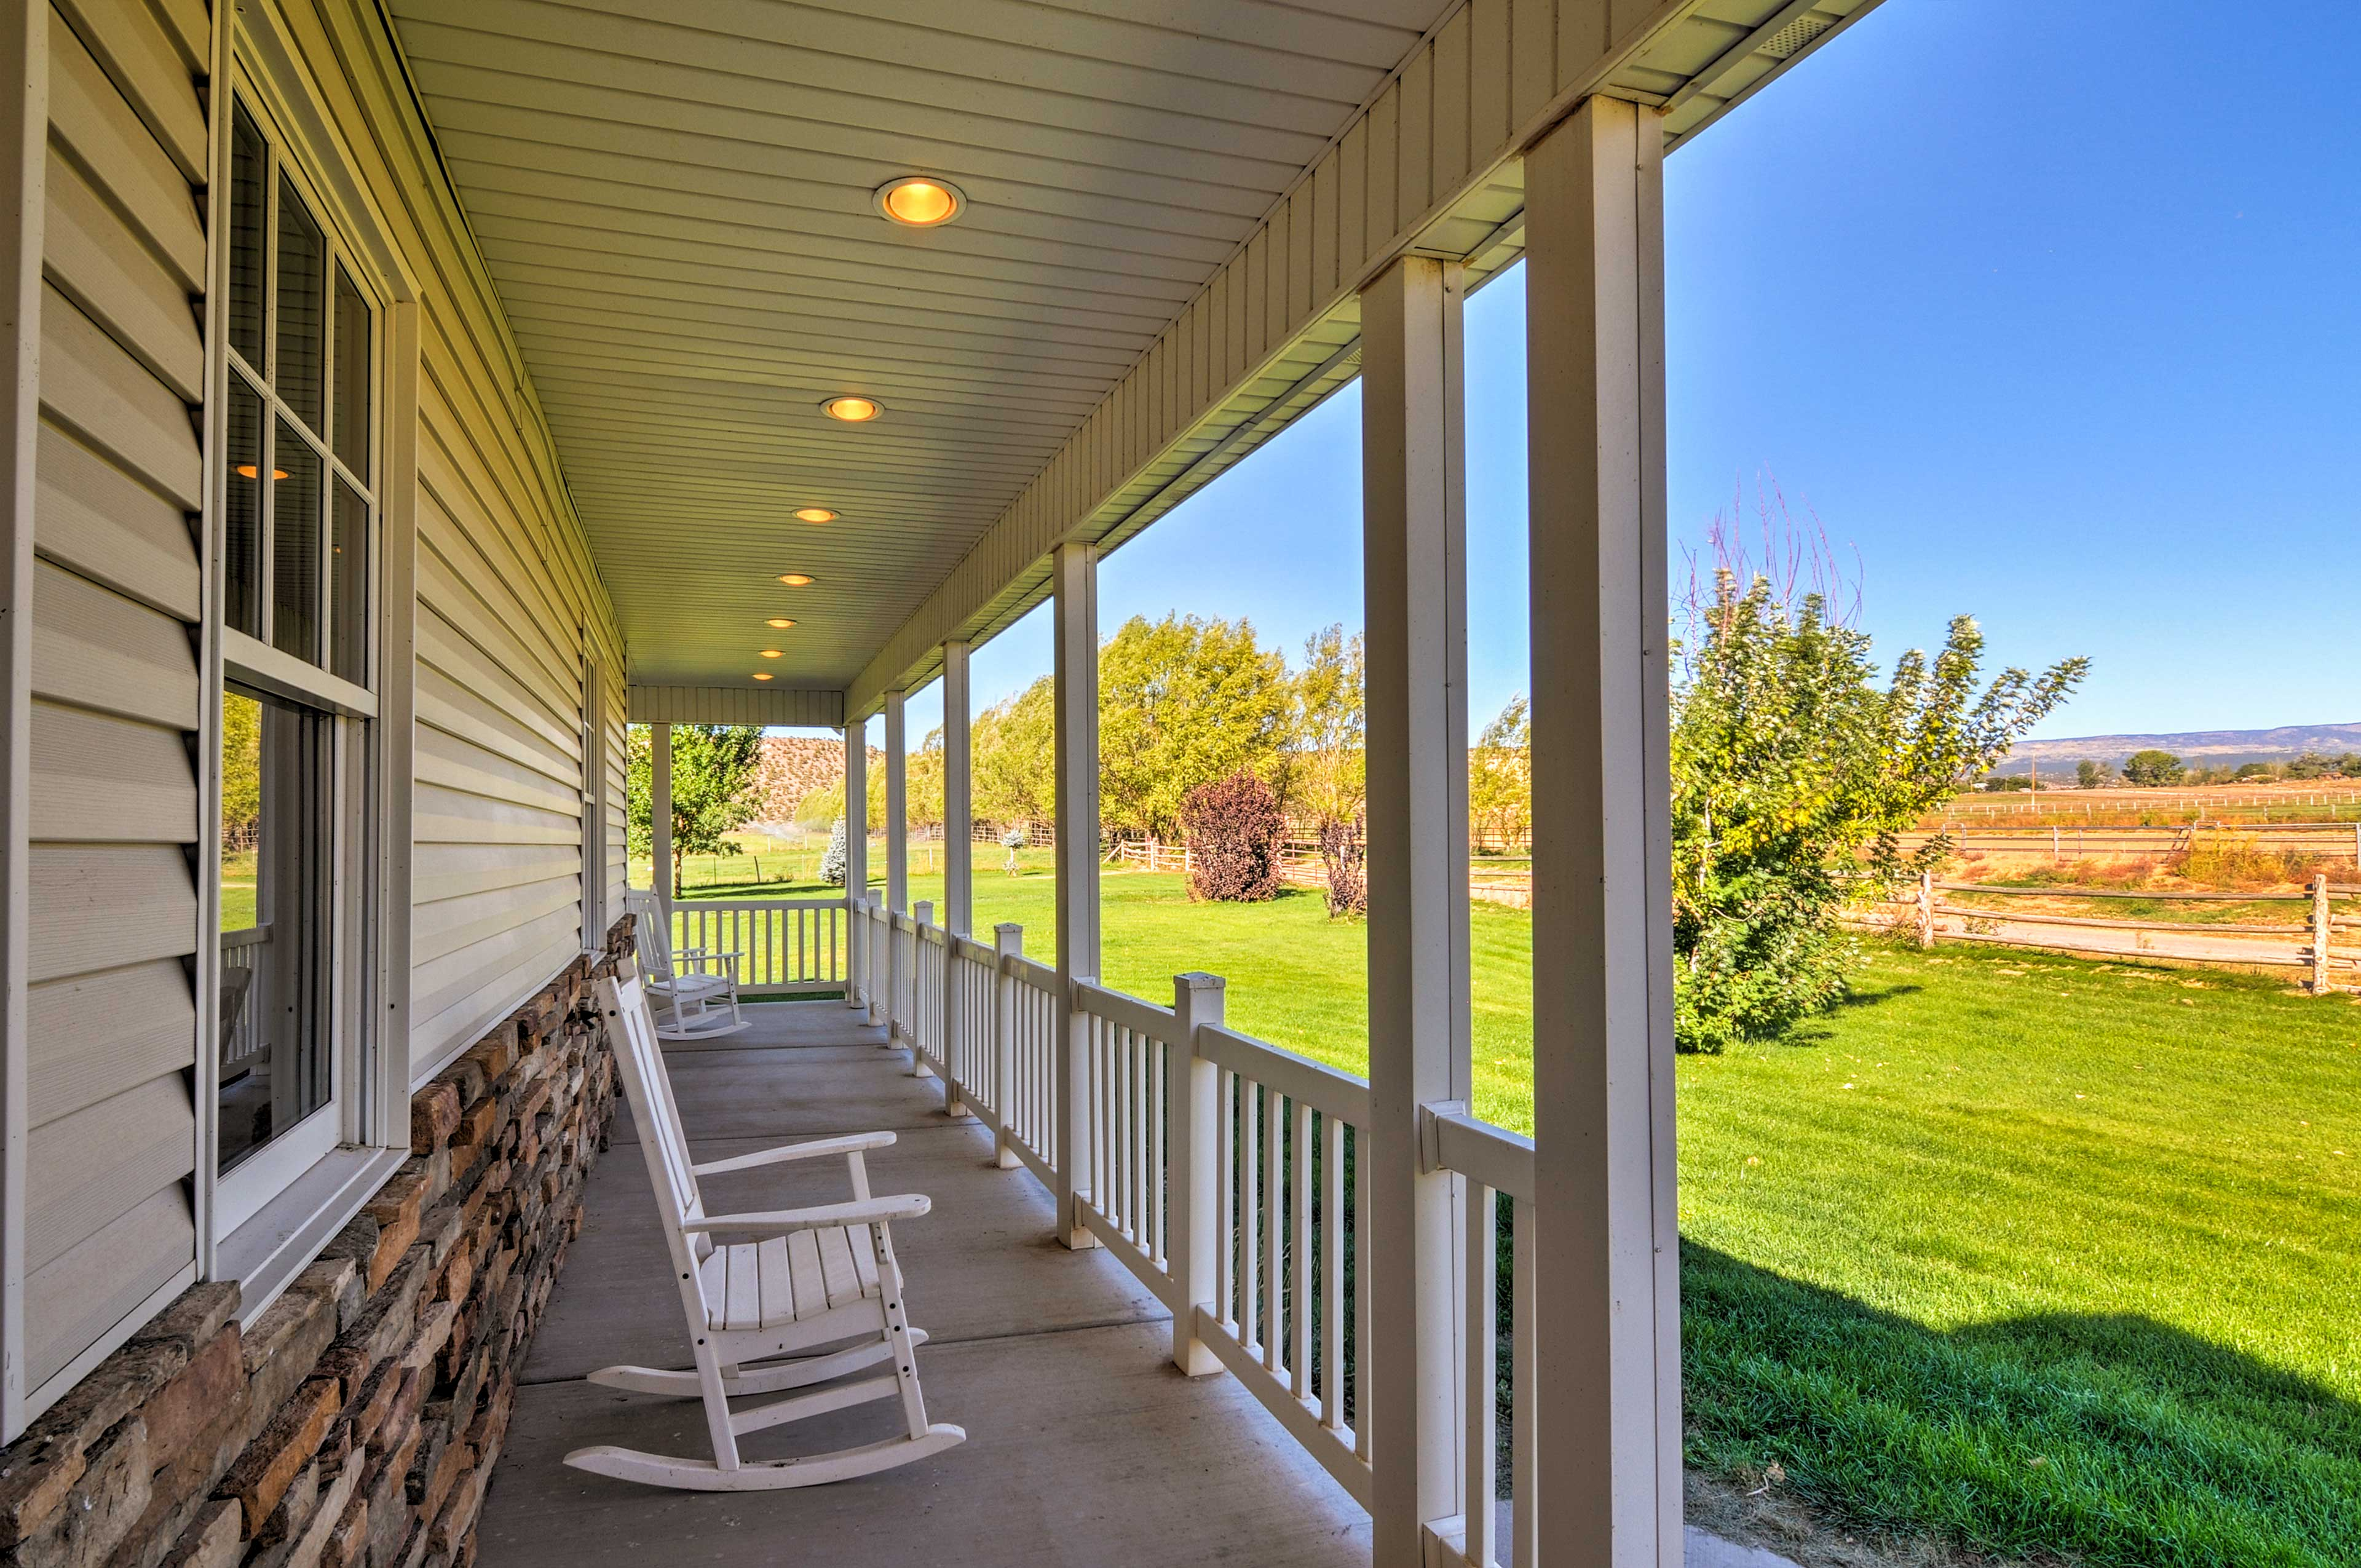 Take your pick between numerous rocking chairs & soak up the fresh Utah air.